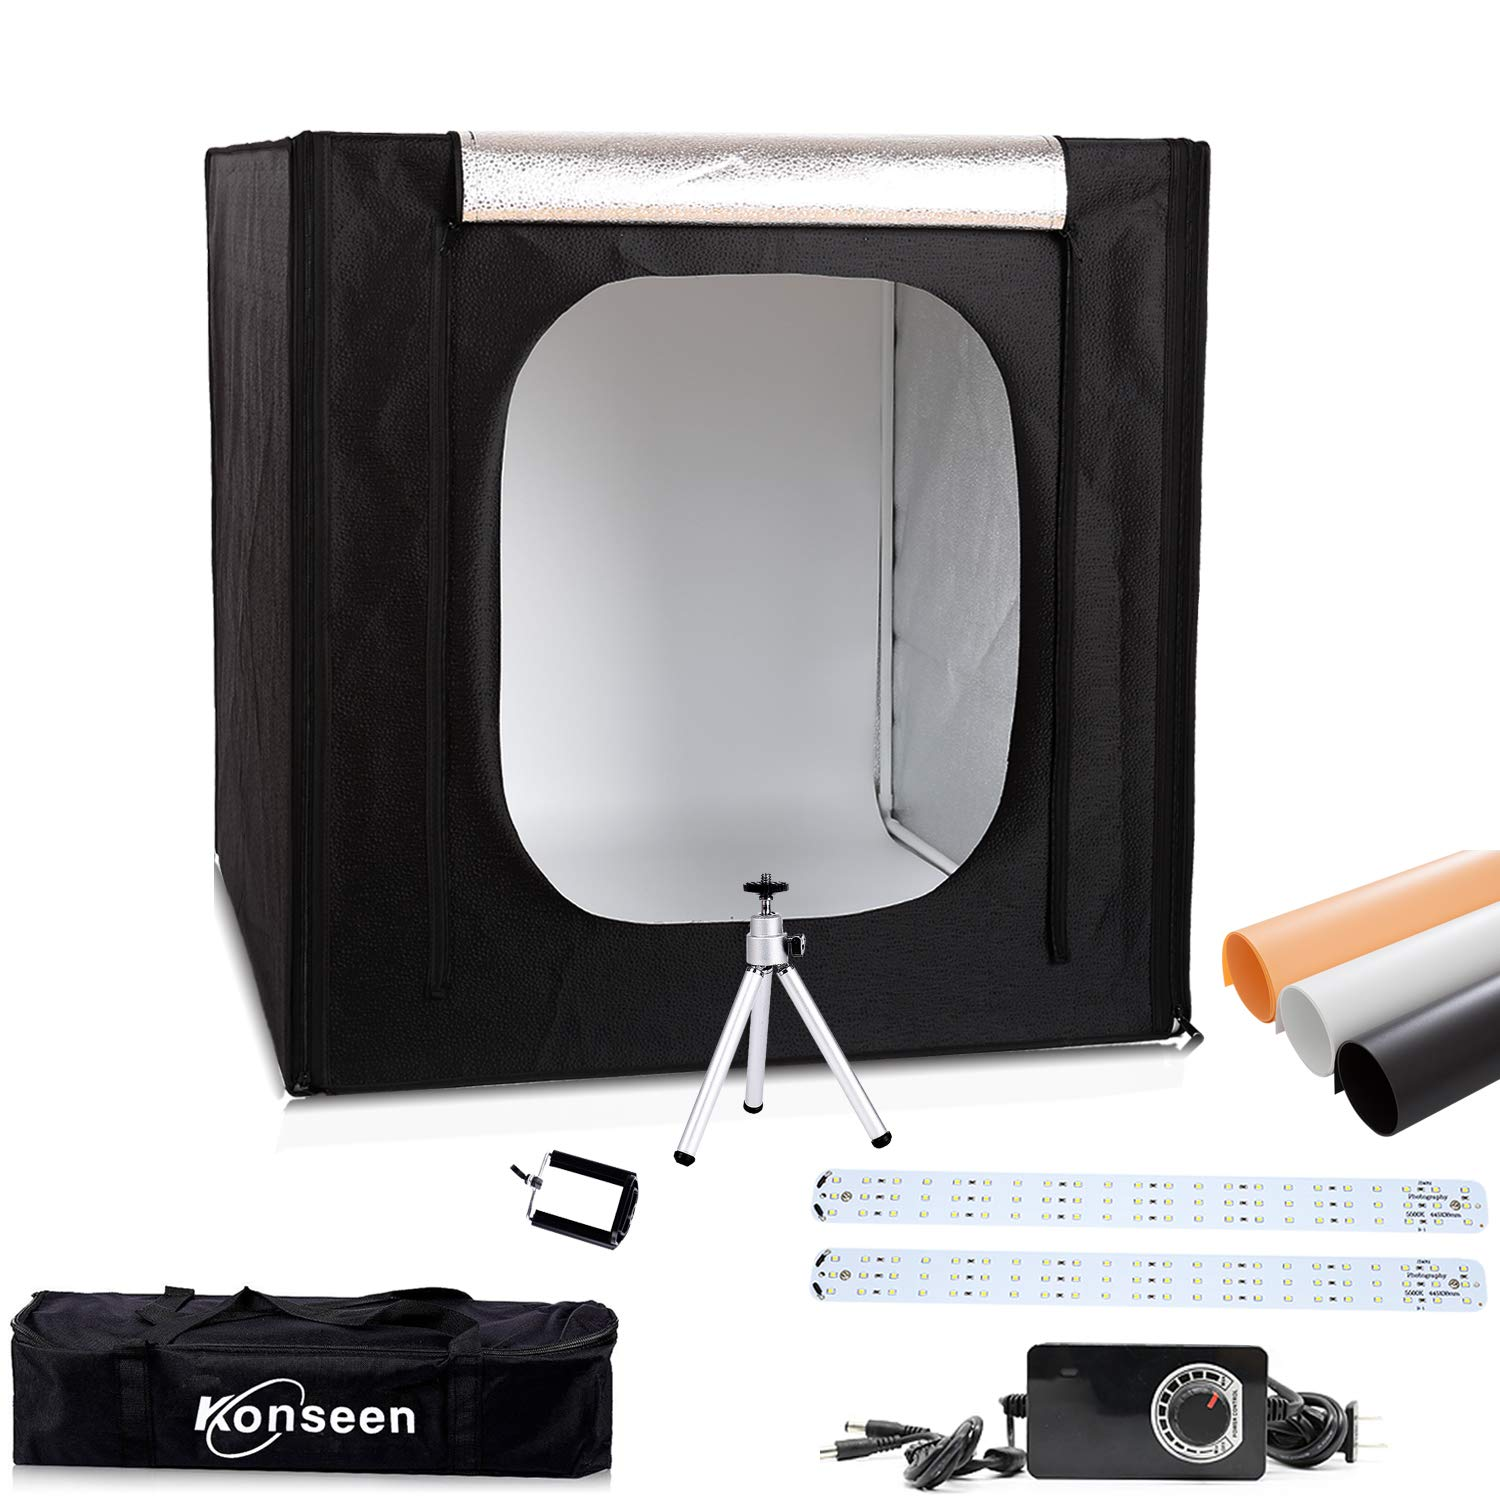 16'x16'x16' Tabletop Dimmable LED Mini Cube Lightbox, Photo Shooting Tent for Product Photography Studio Lighting with Mini Tripod, Clamp, 3 Color PVC Backgrounds Konseen